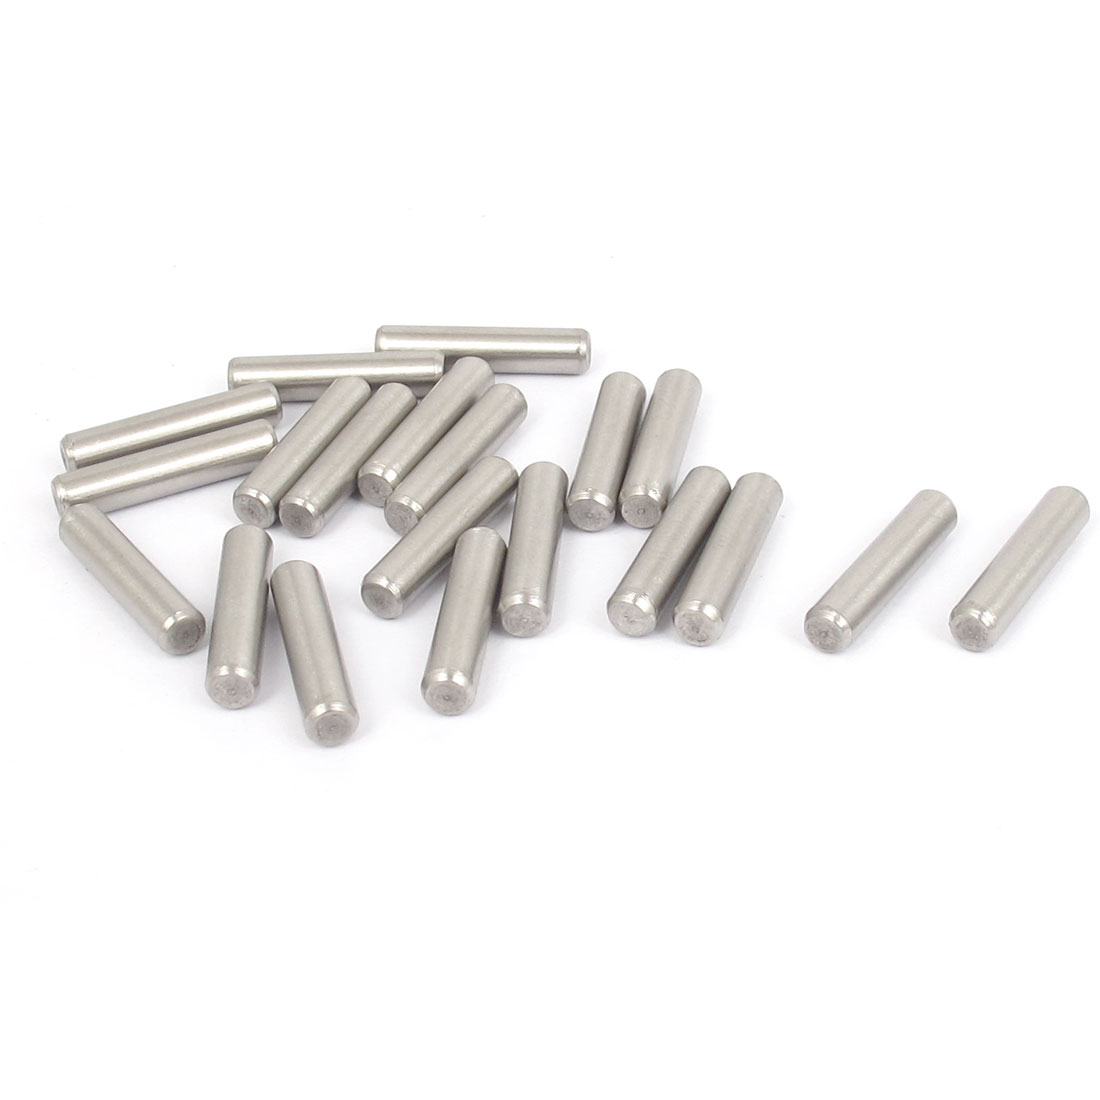 4mmx18mm 304 Stainless Steel Parallel Dowel Pins Fastener Elements 20pcs